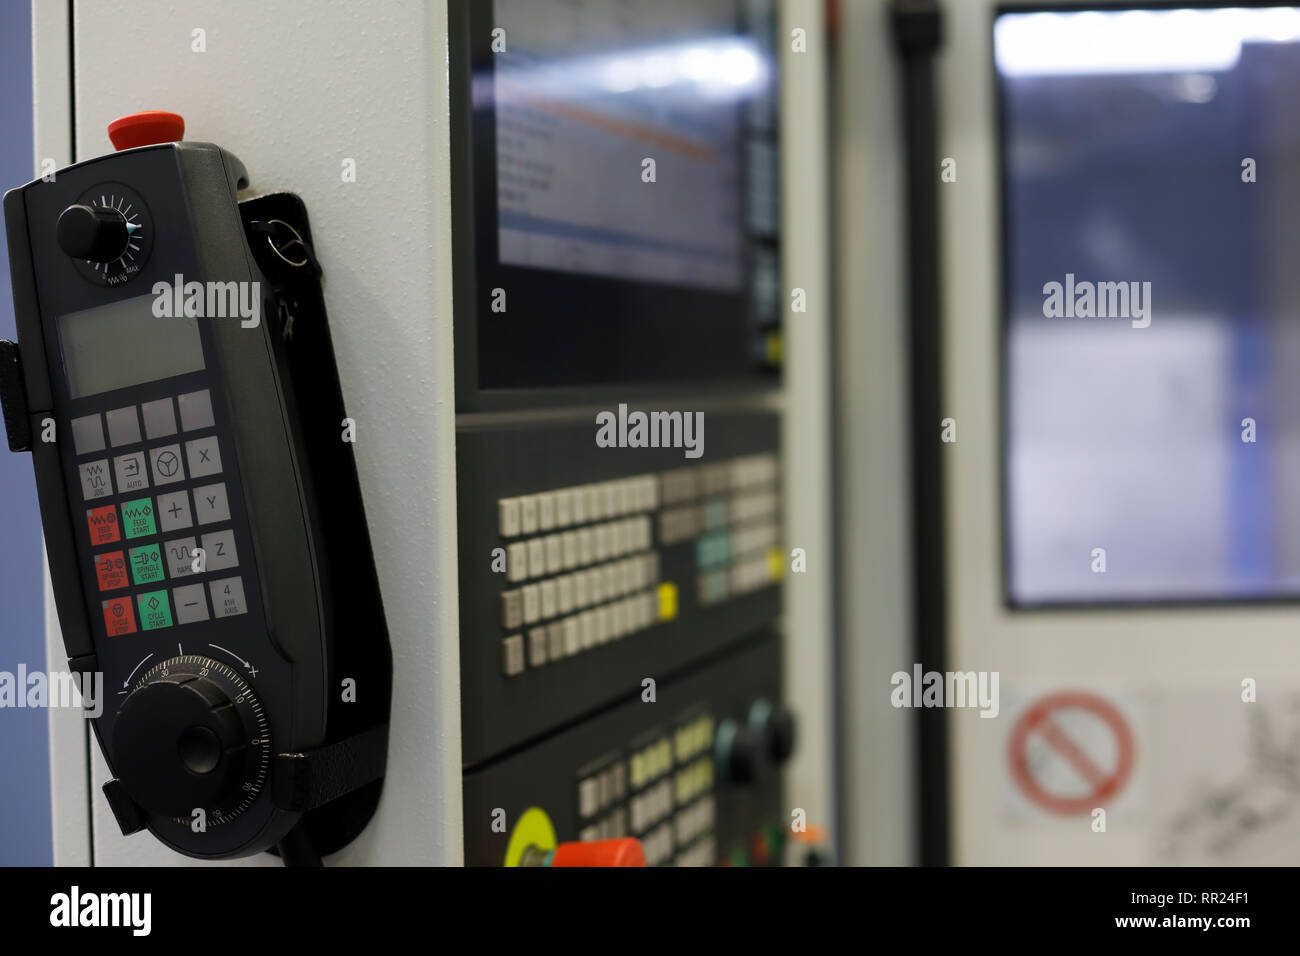 Pendant manual remote control of 4 axis CNC lathe with handwheel and LCD screen. Selective focus. - Stock Image